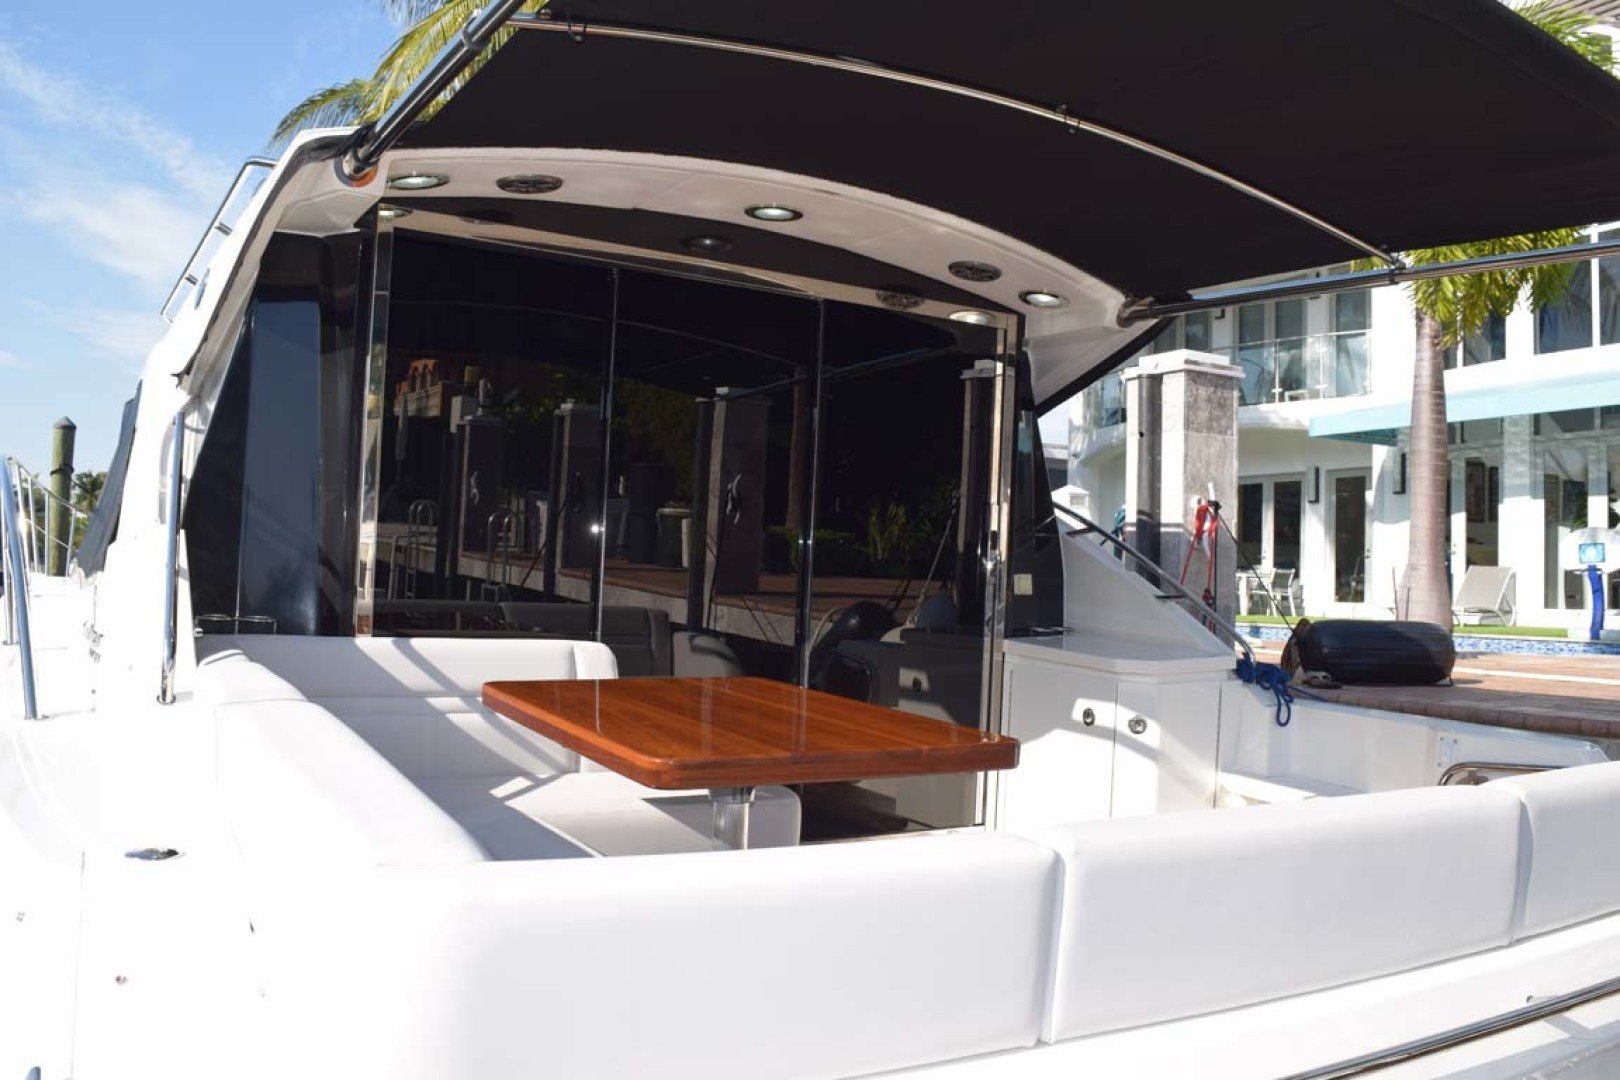 Sea Ray-510 Sundancer 2015 -Ft Lauderdale-Florida-United States-Aft Deck With Retractable Sun Shade-1189918 | Thumbnail